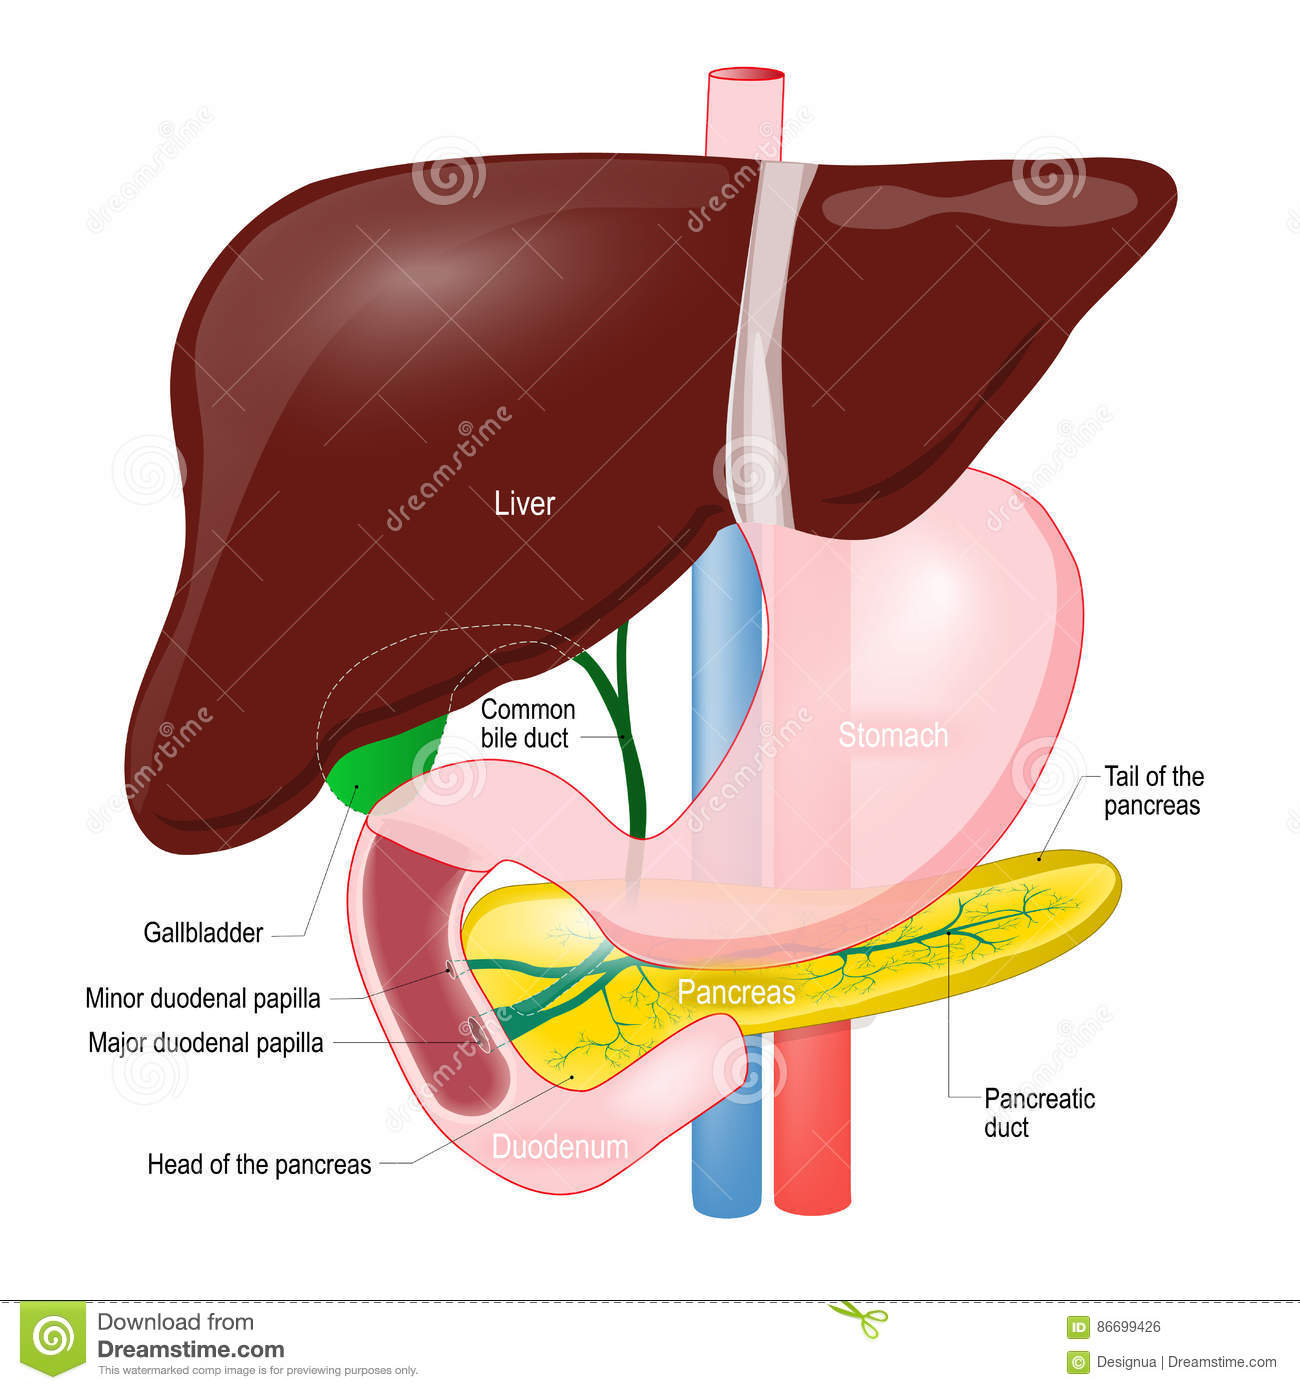 pancreas anatomy diagram caravan towing electrics wiring gallbladder duct of the liver duodenum